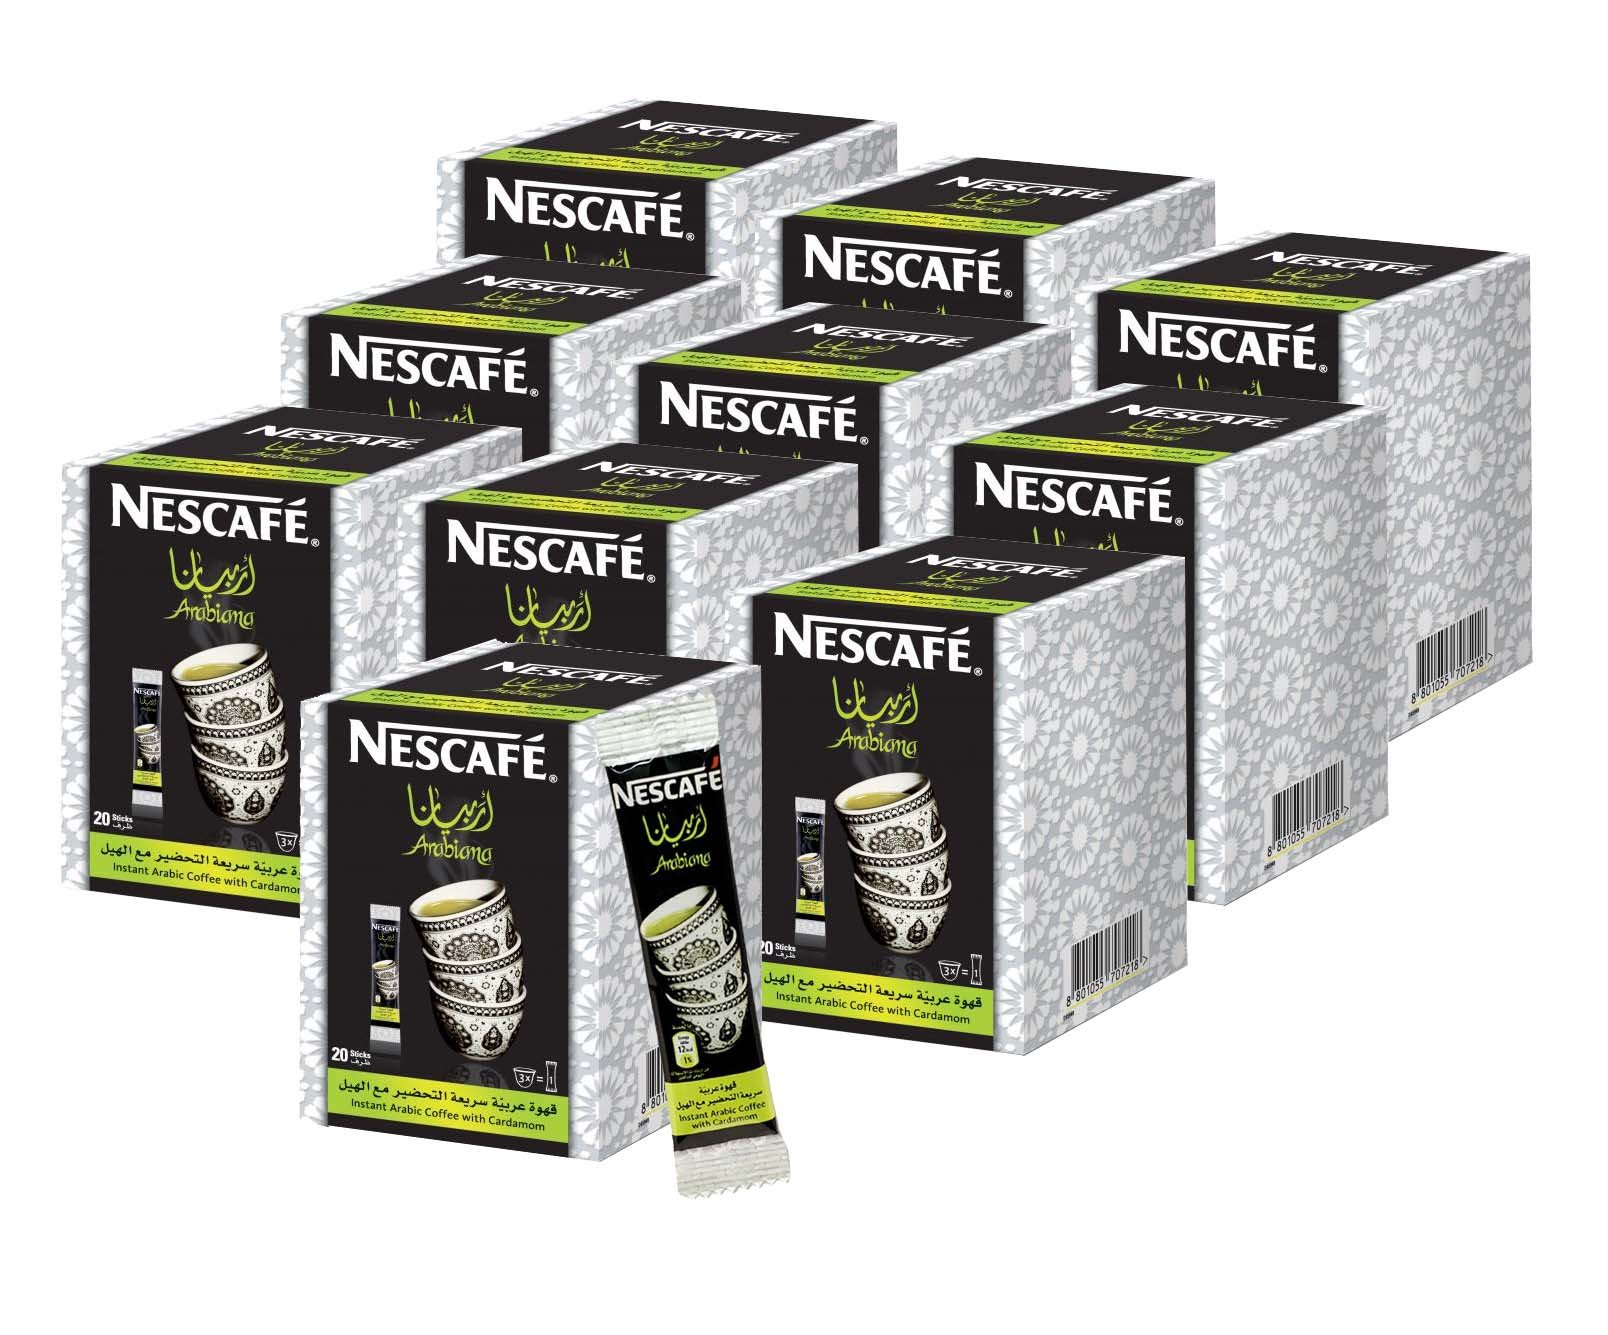 Instant Nescafe Arabiana Arabic Coffee Mix With Cardamom Flavor - Small Sticks (10 Boxes (200 Sticks))